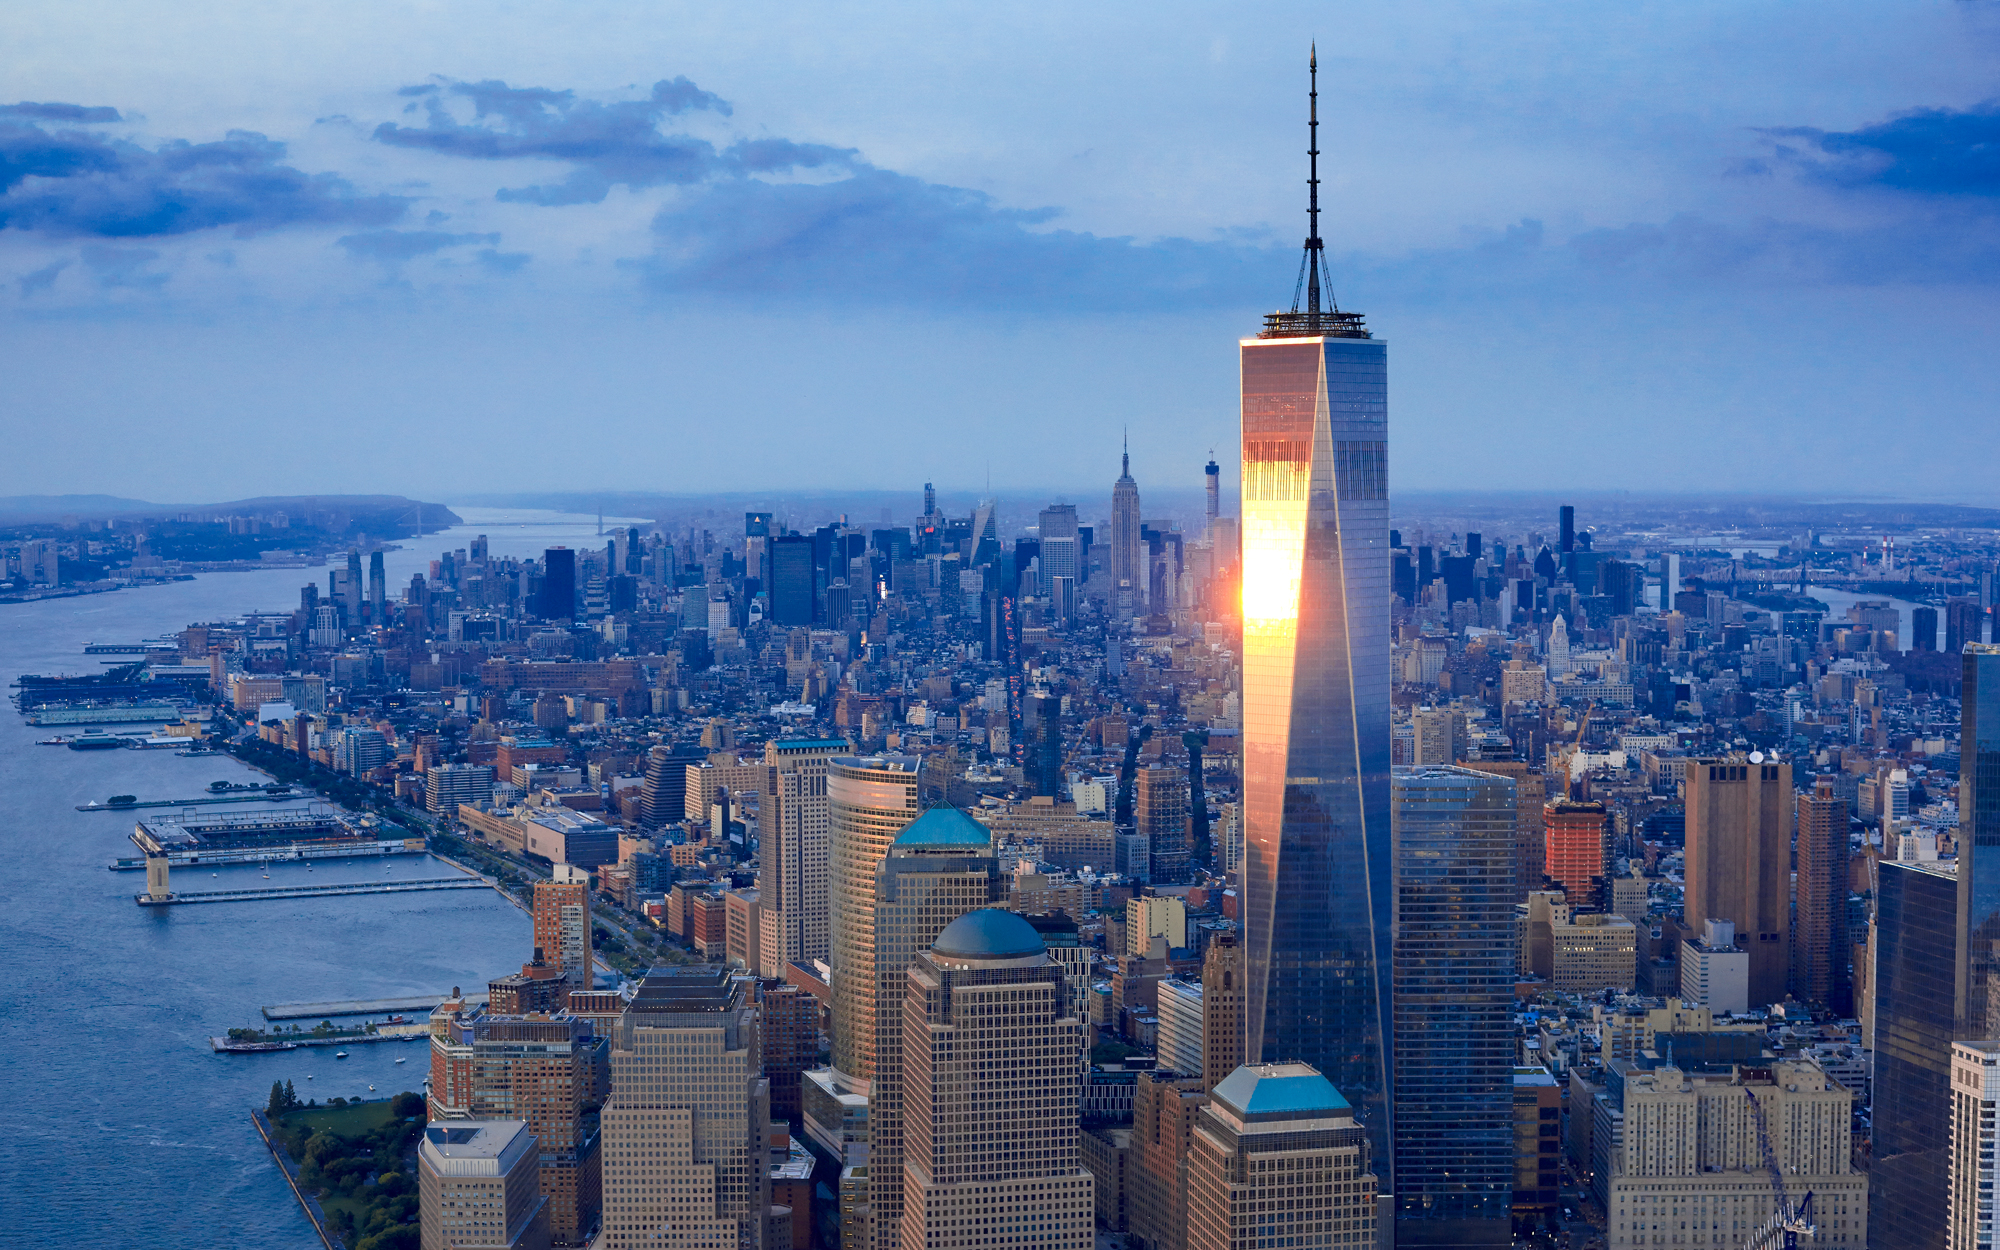 6. One World Trade Center, New York City (1,776 feet)